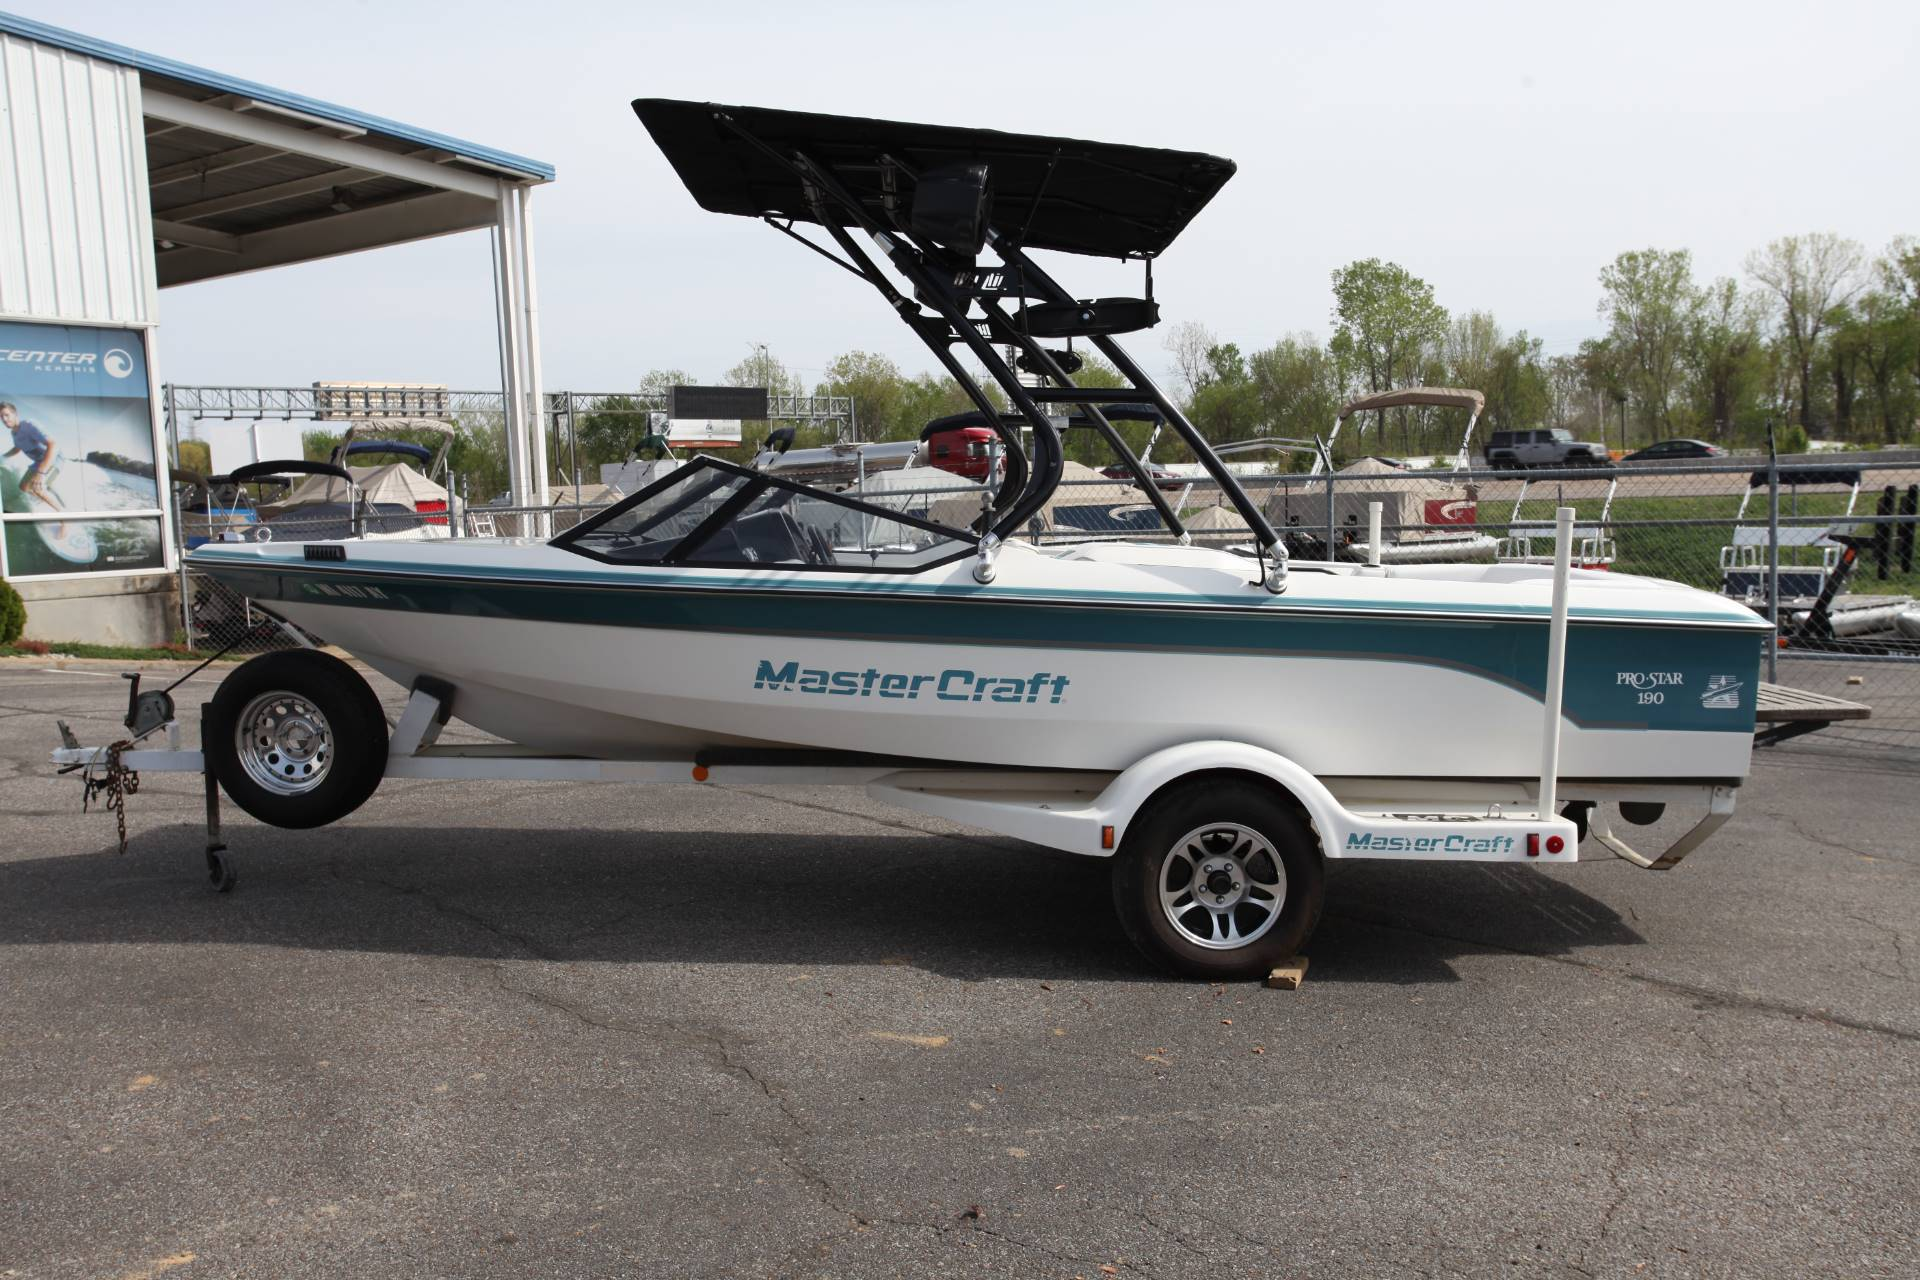 1988 Mastercraft PROSTAR 190 in Memphis, Tennessee - Photo 1